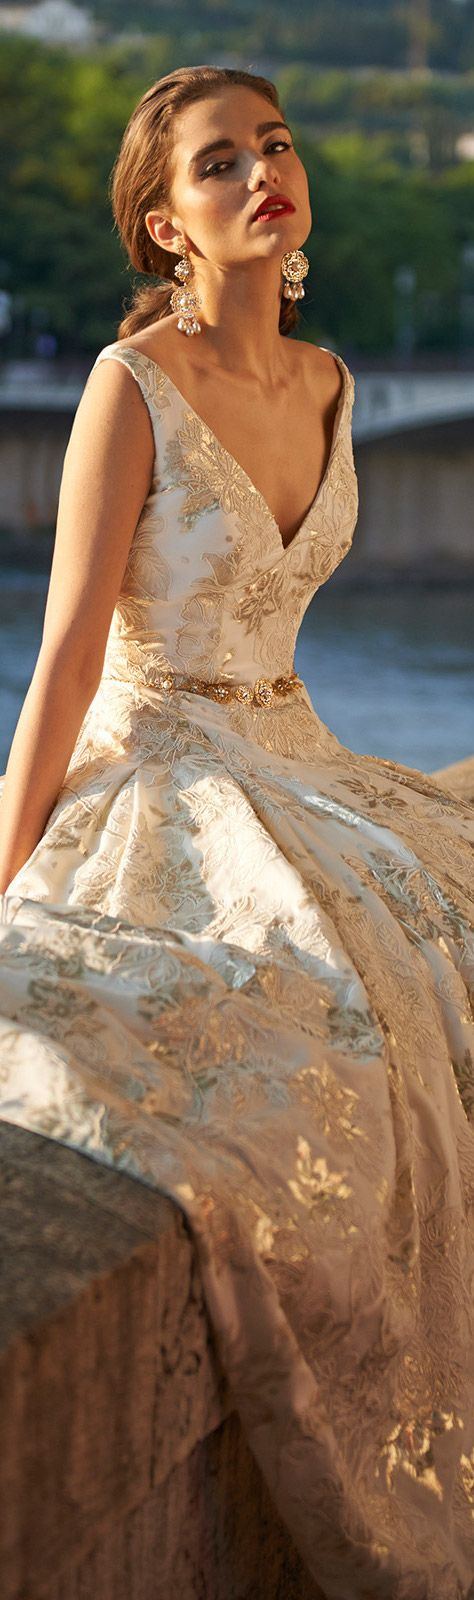 Cream and gold gown.